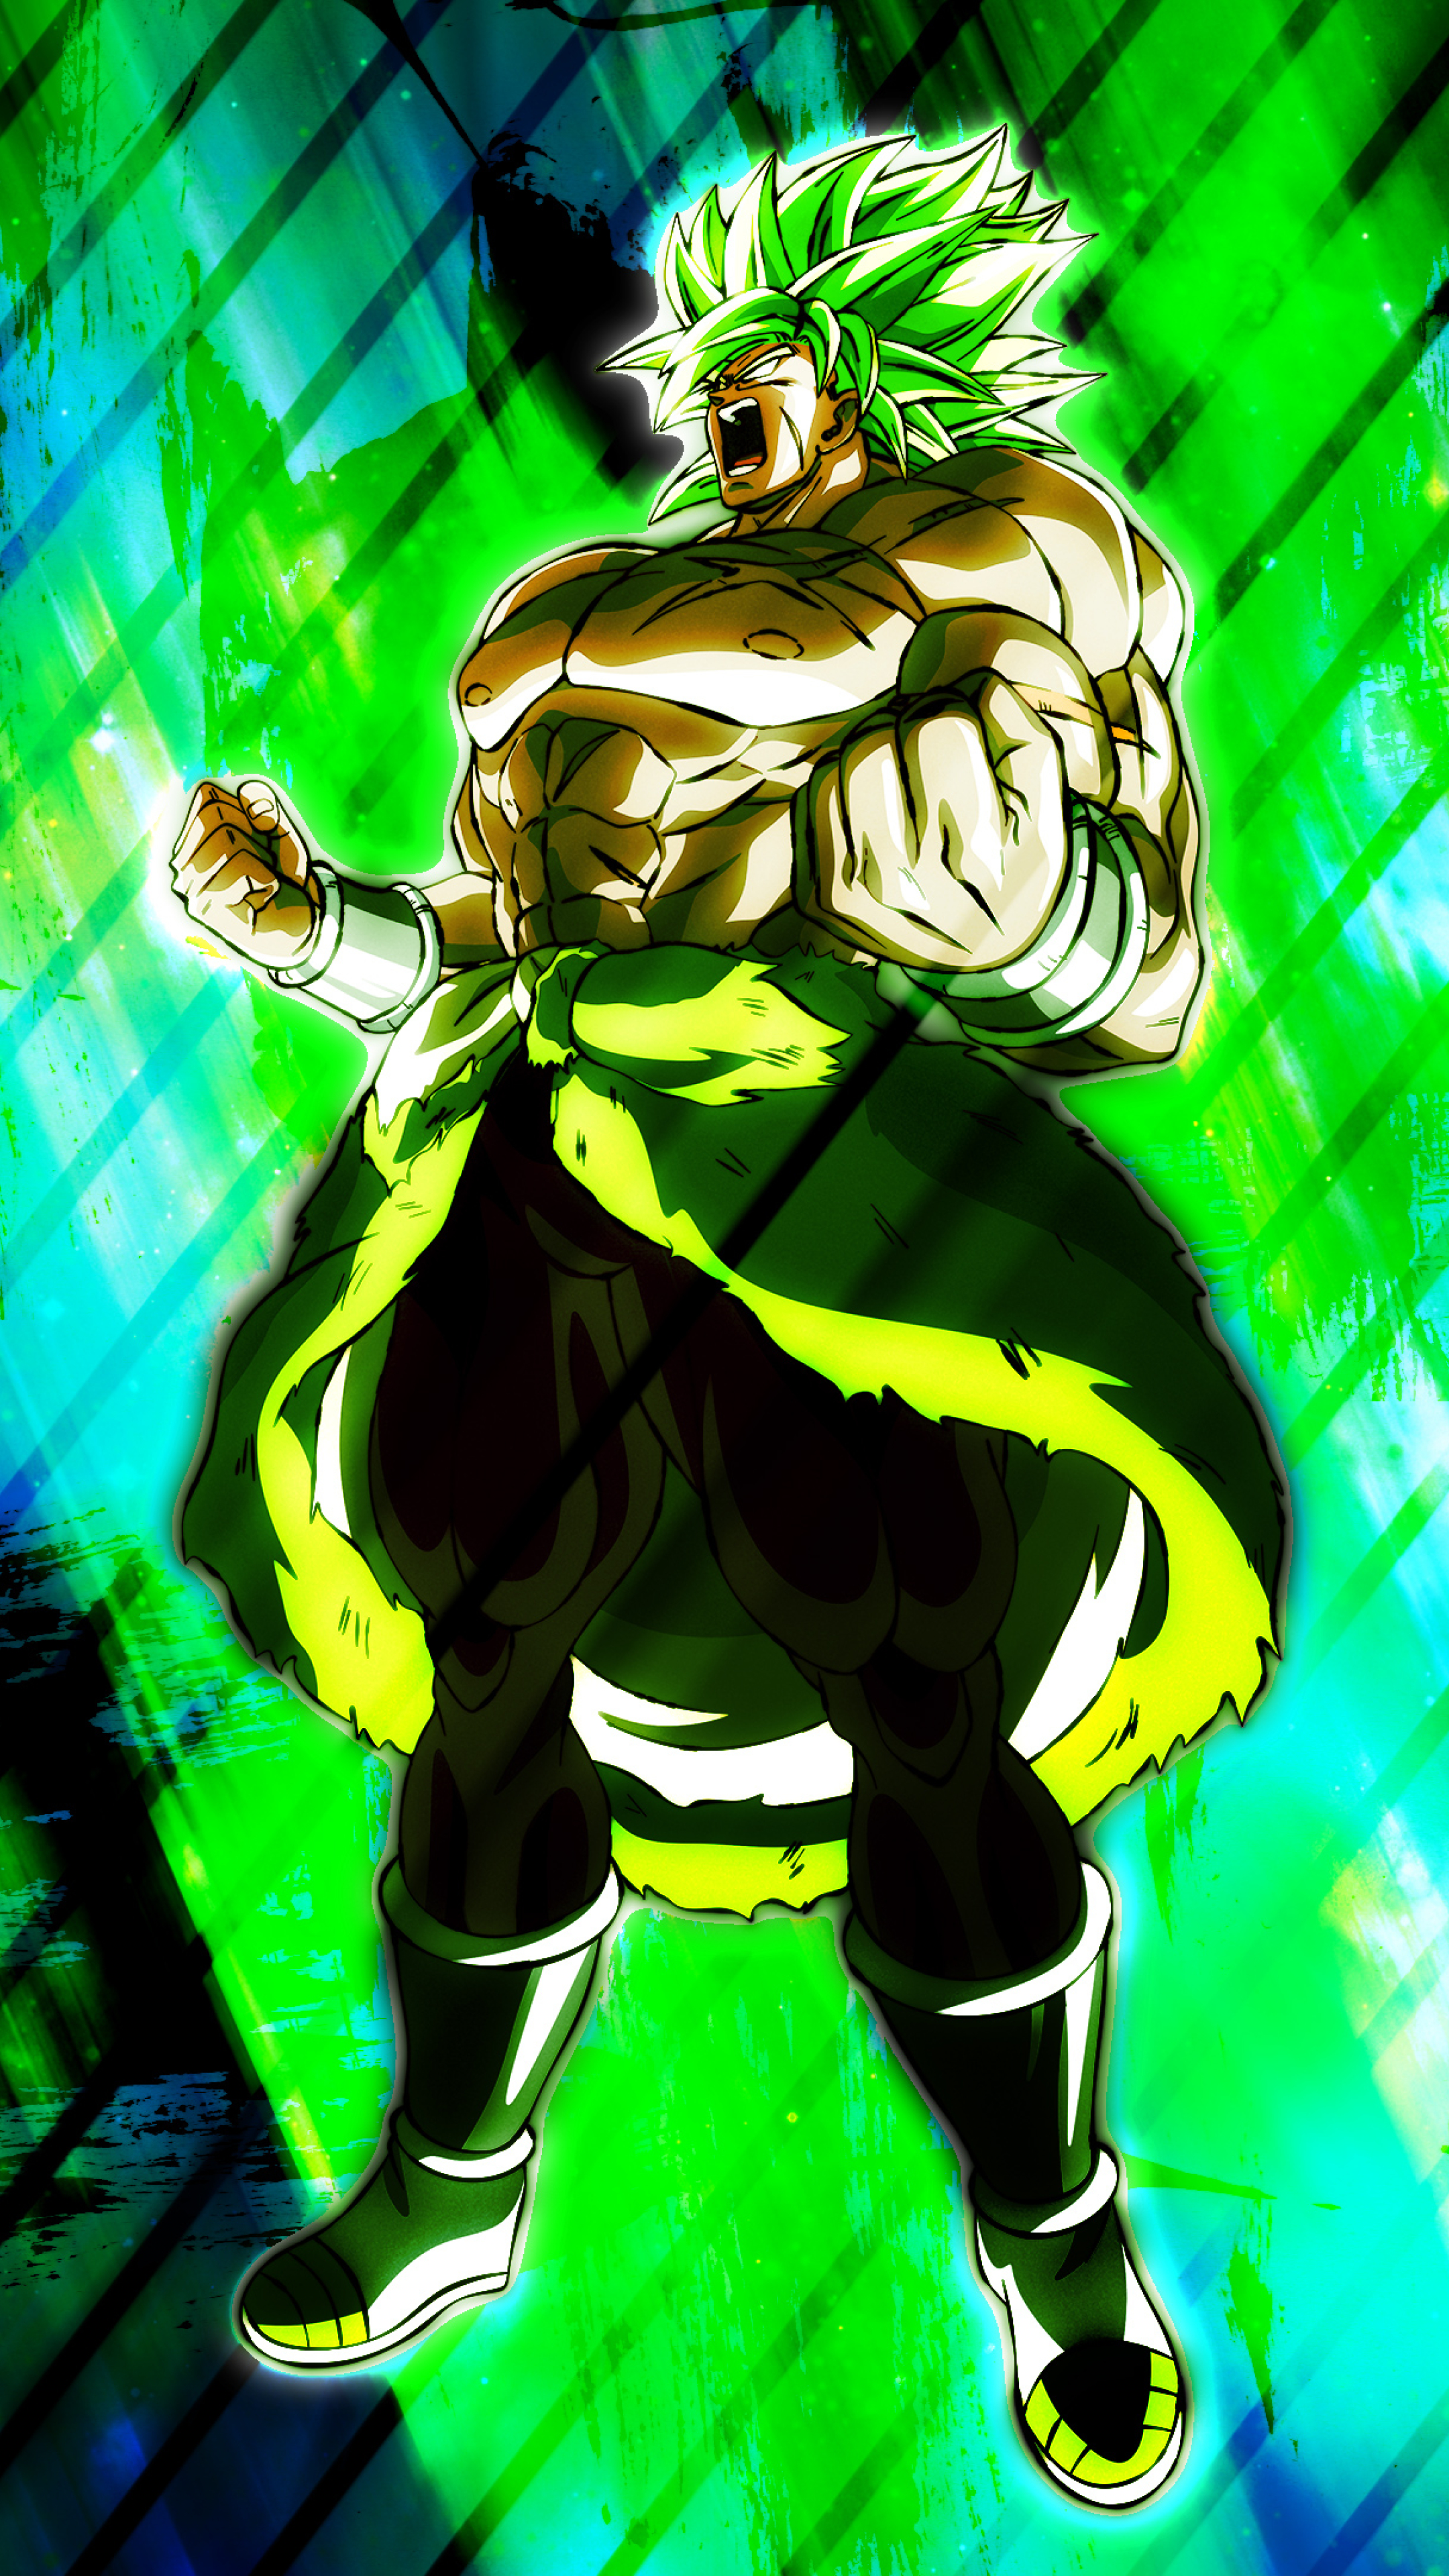 Unstoppable Broly 4K Wallpaper in 2160x3840 Resolution